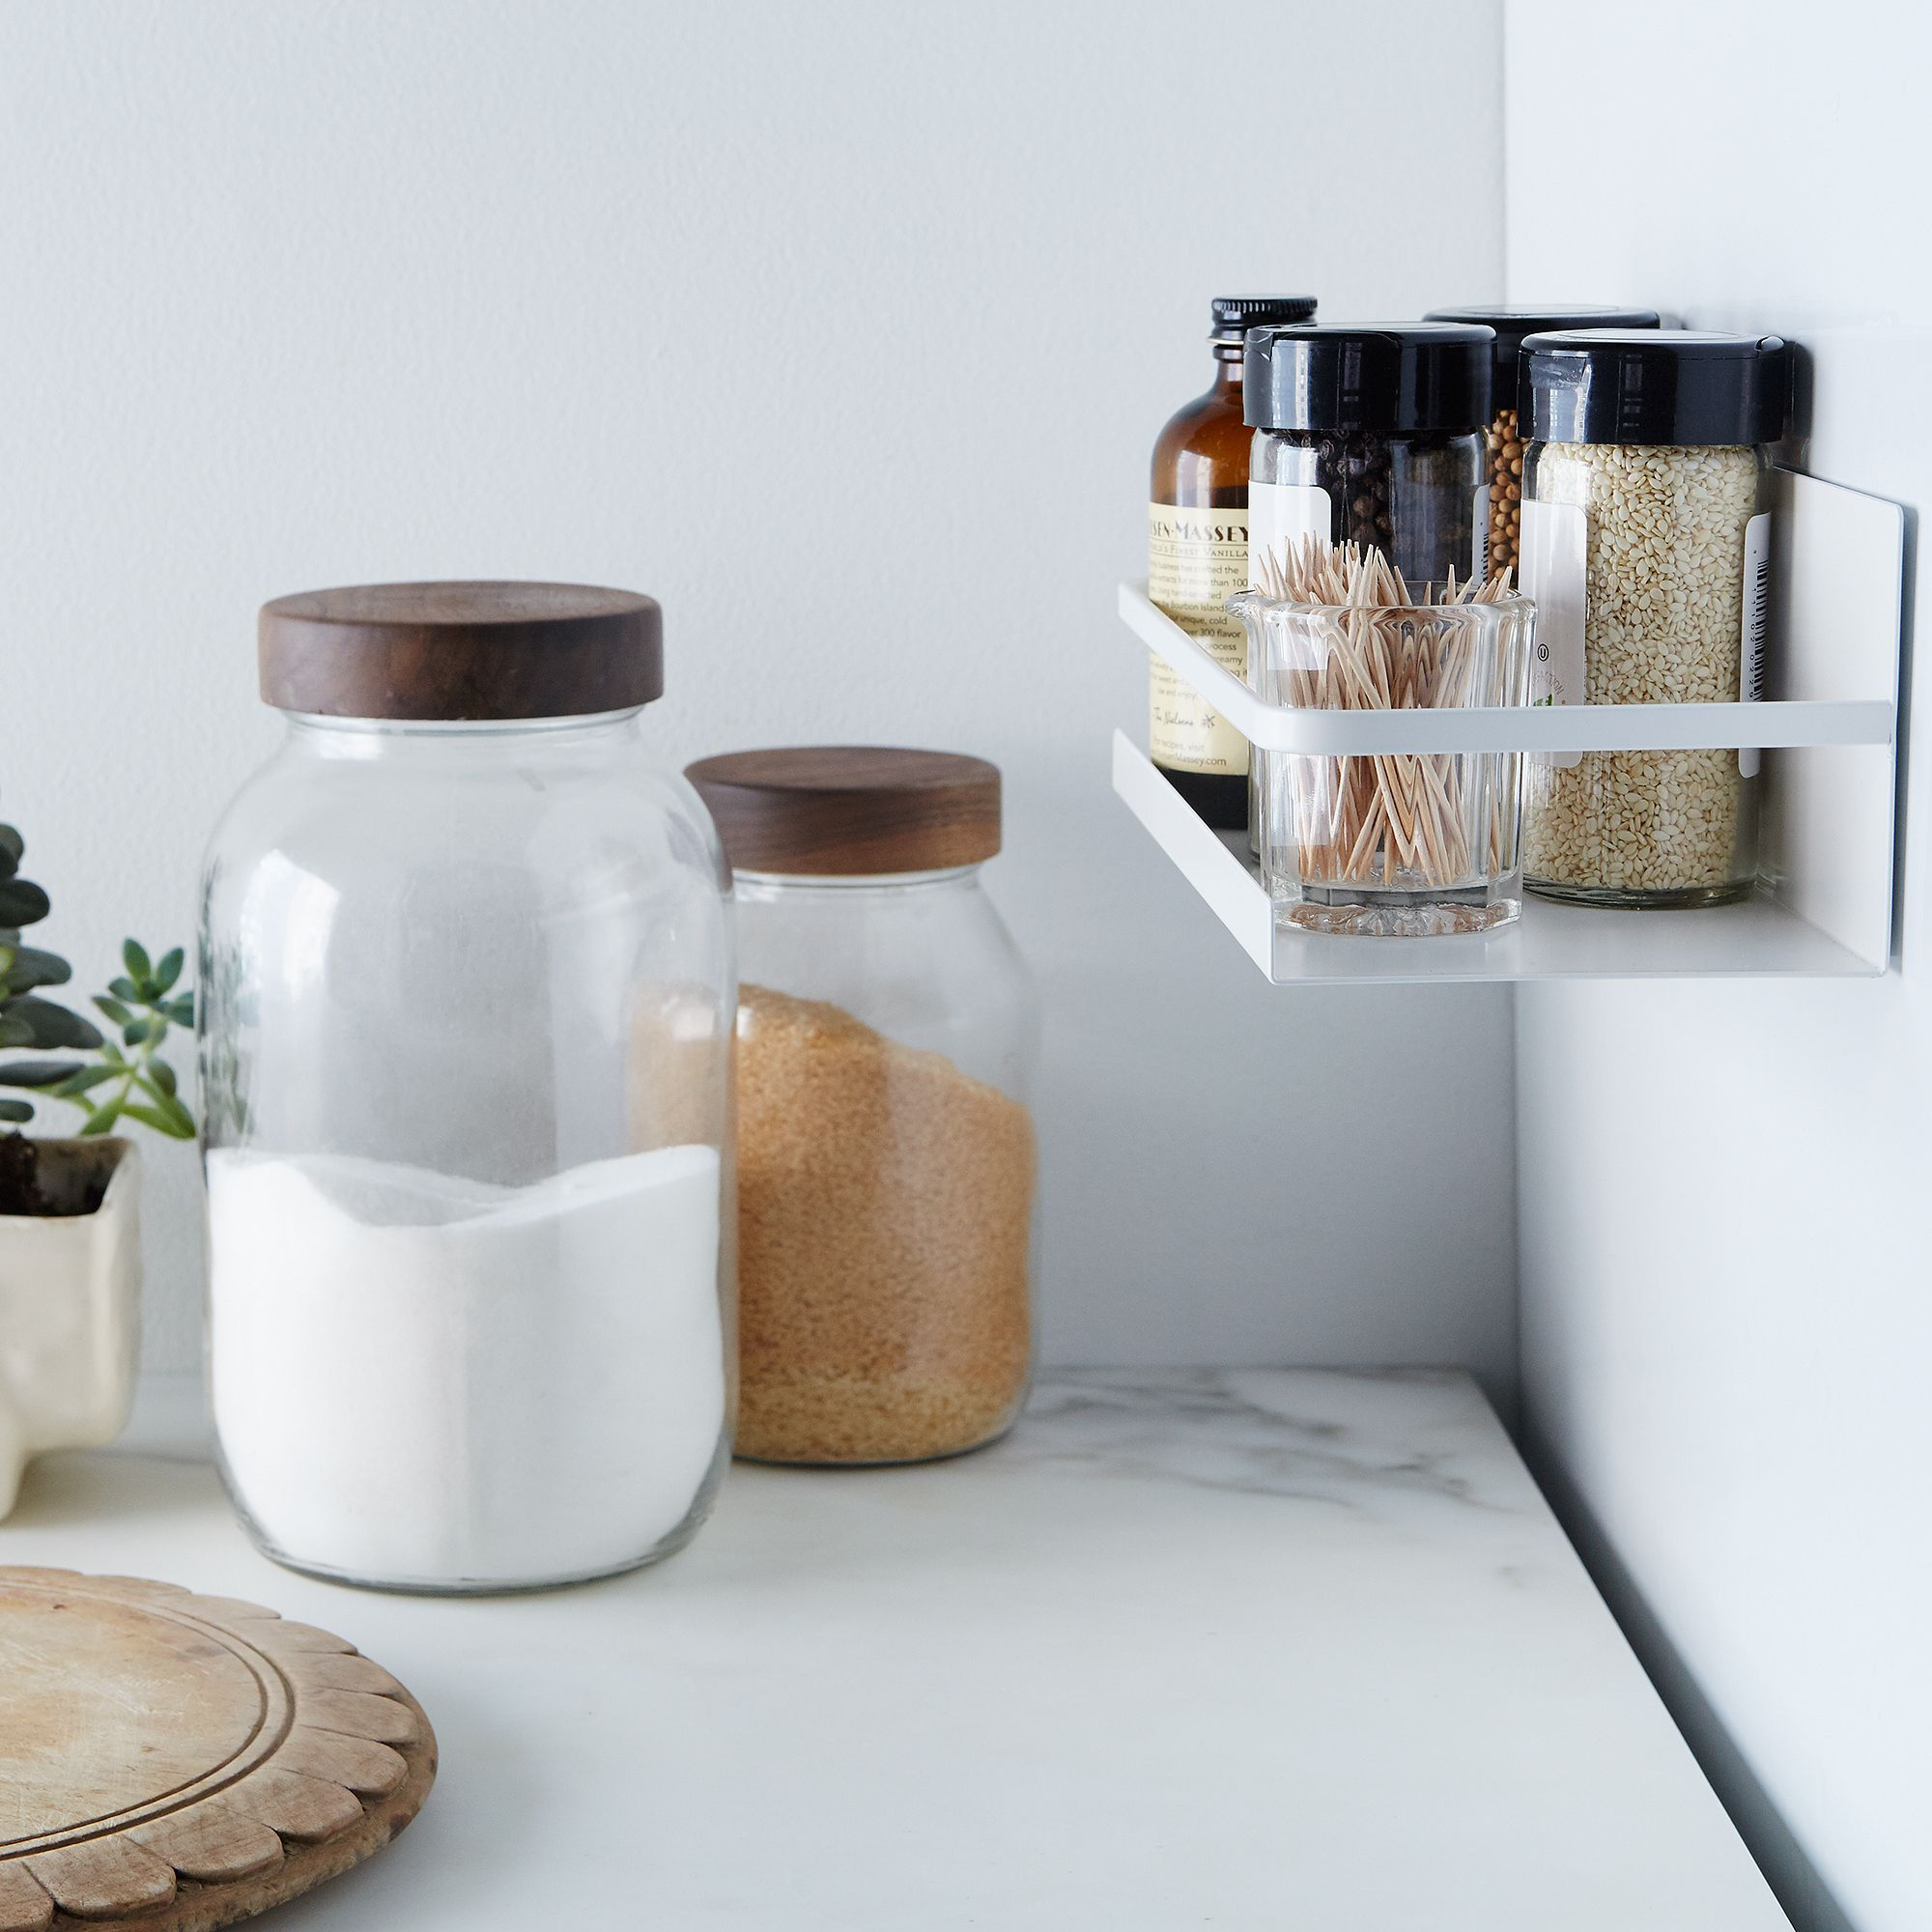 Magnetic Spice Rack $24